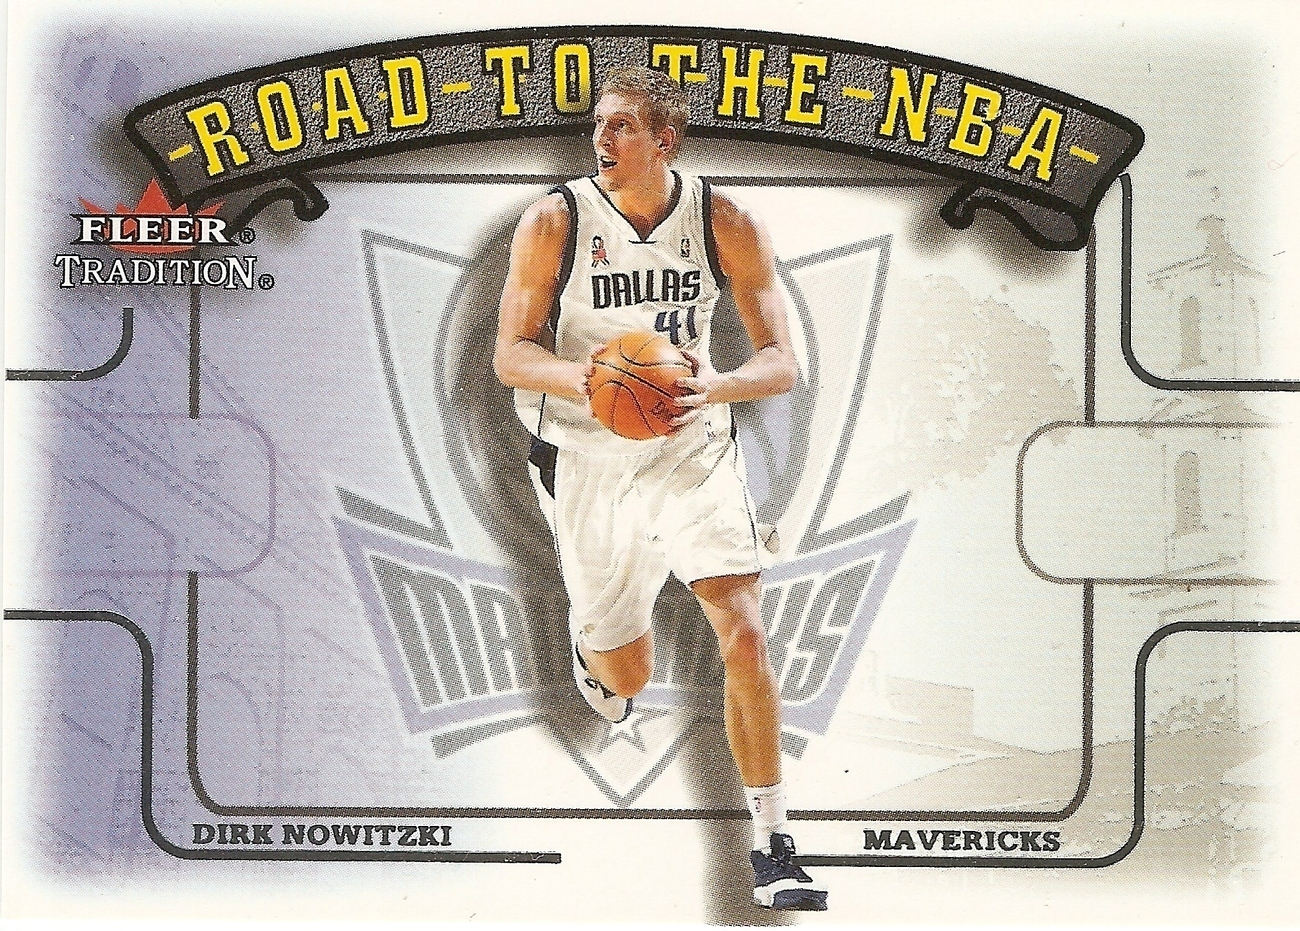 Dirk Nowitzki Fleer 02-03 Road to the NBA #9 Dallas Maverick